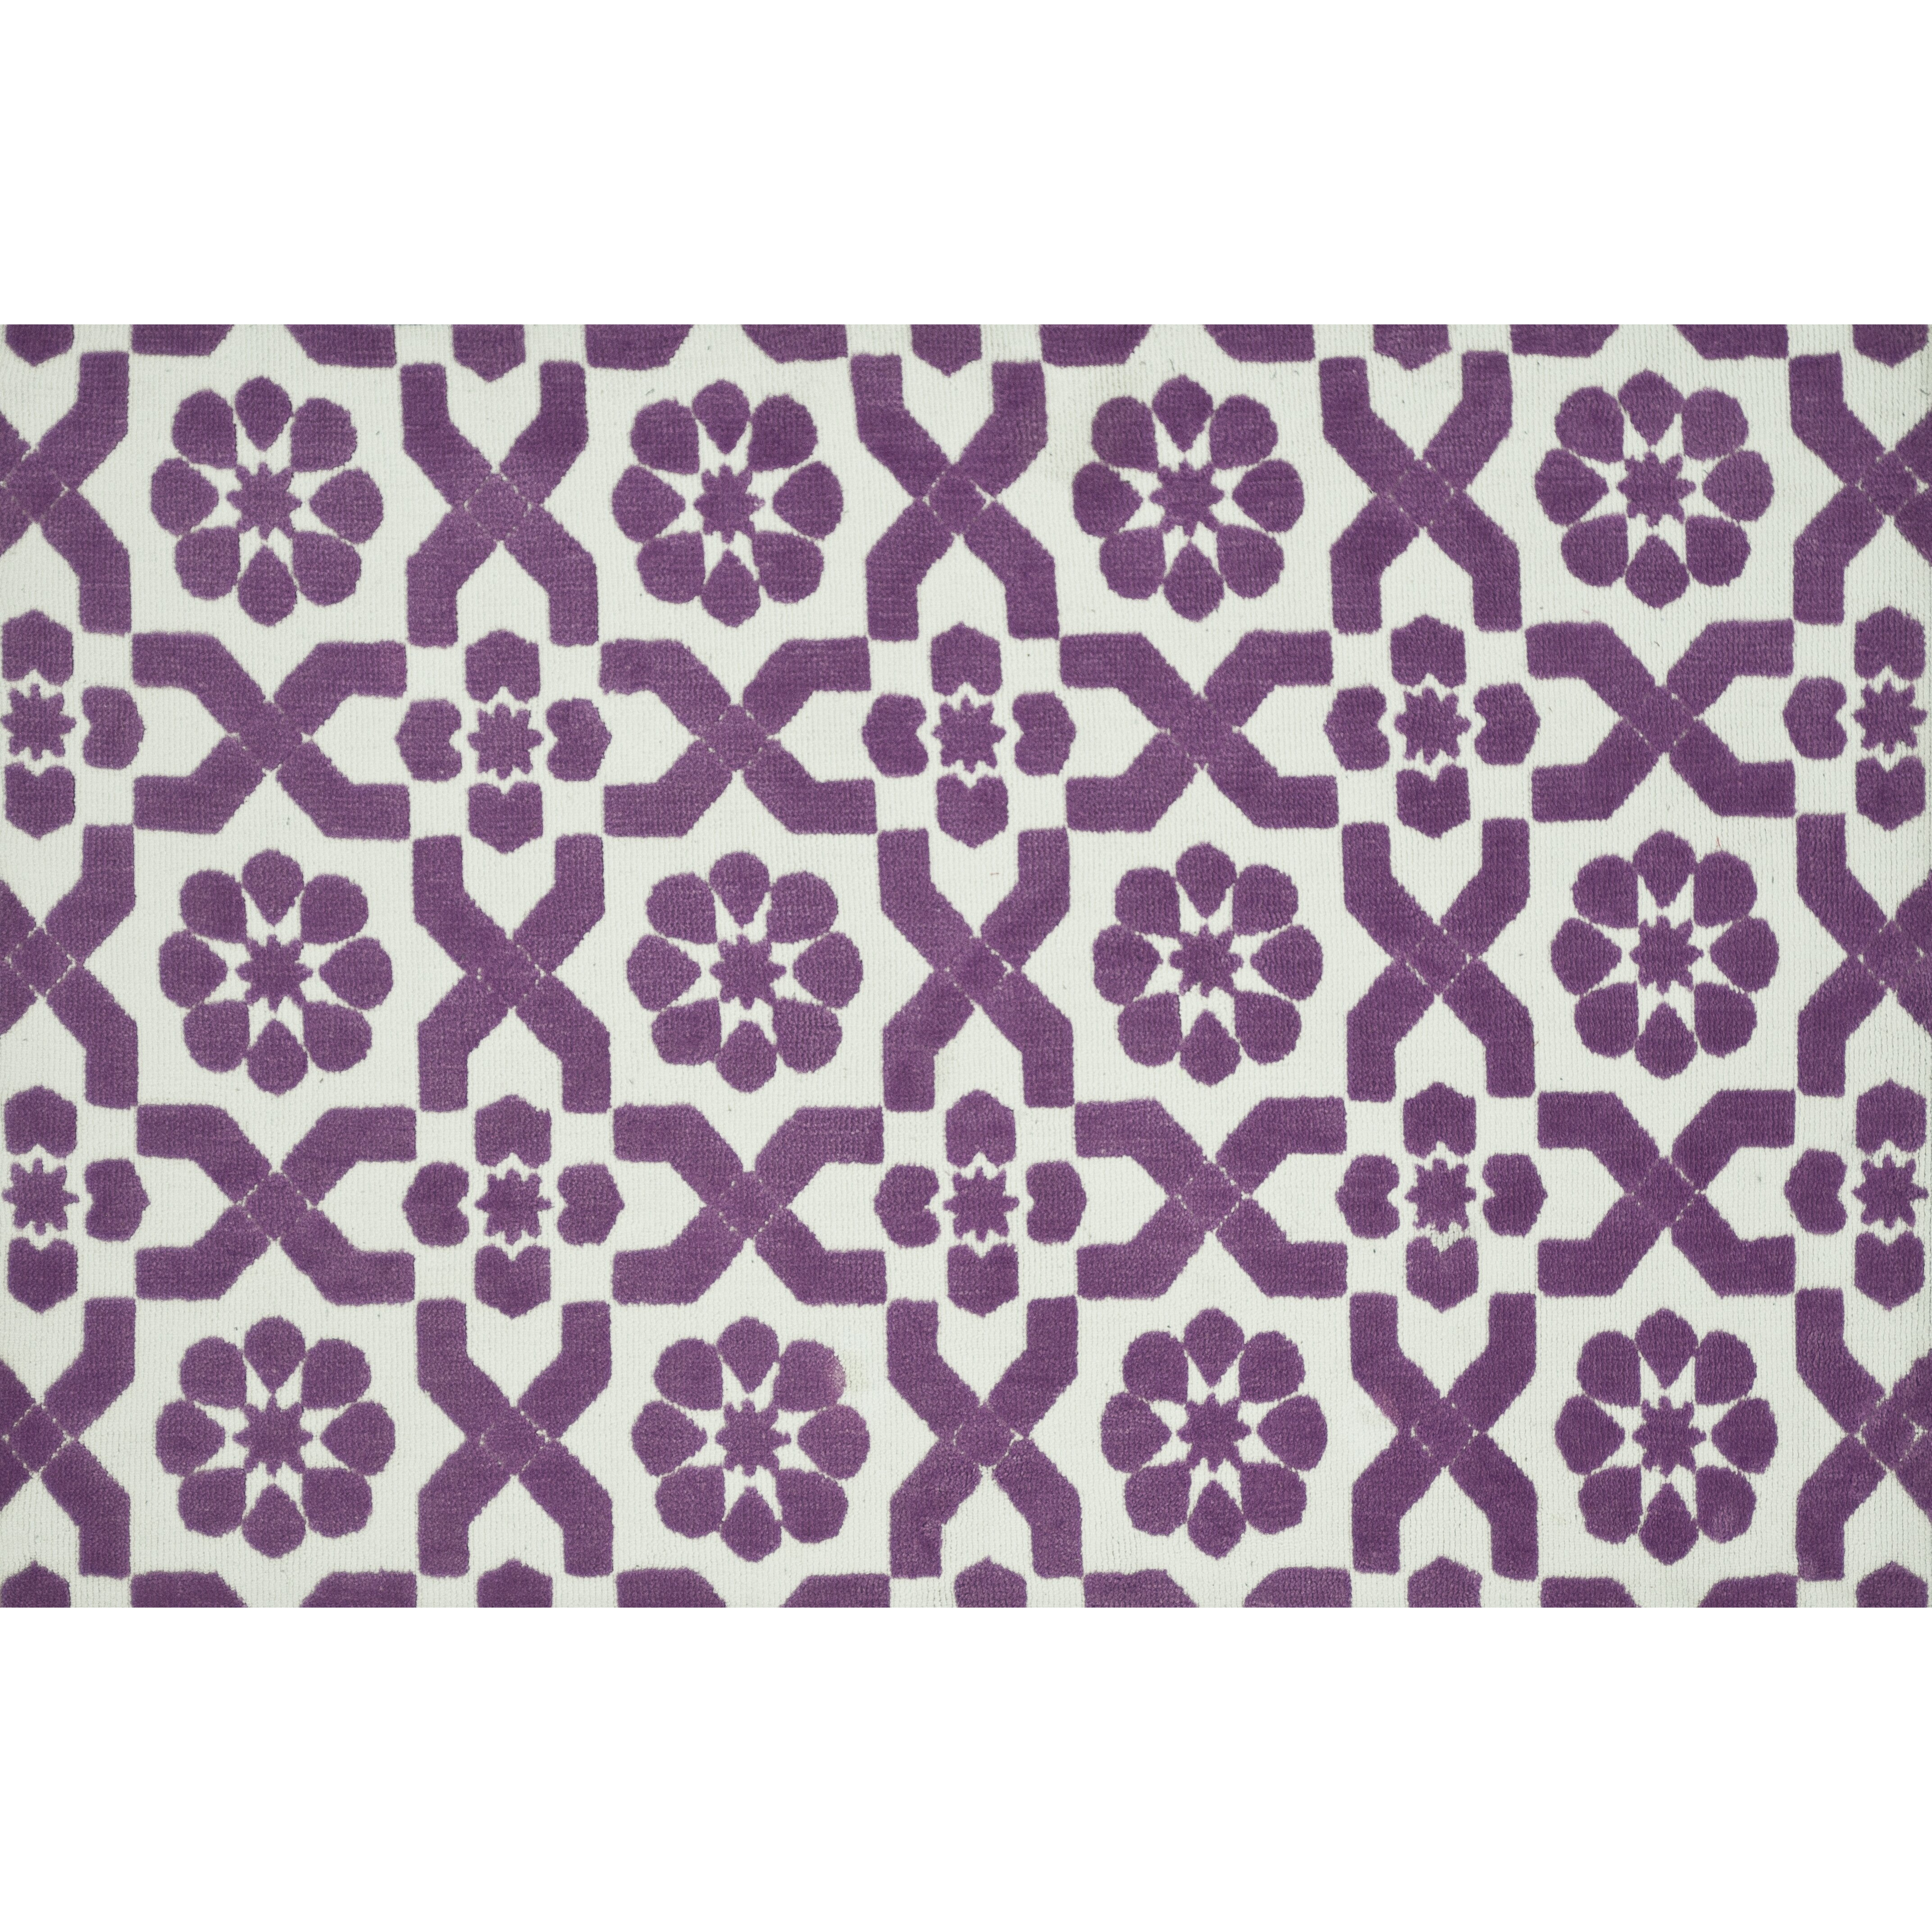 Xl Purple Rug: Loloi Rugs Piper Light Purple/Ivory Fairies Area Rug